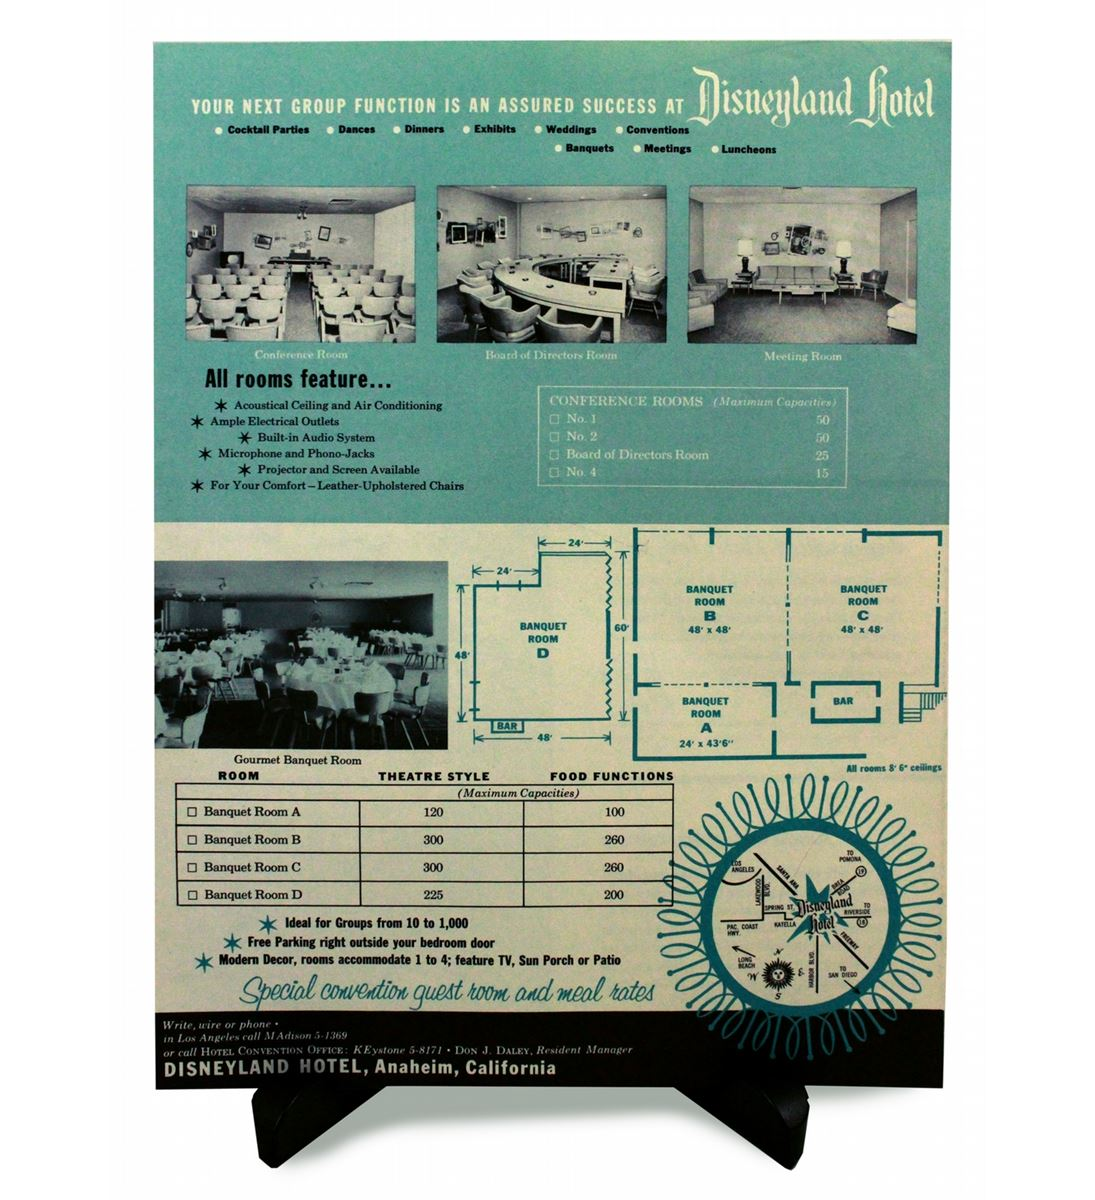 Rare 1956 Disneyland Hotel Facilities Brochure